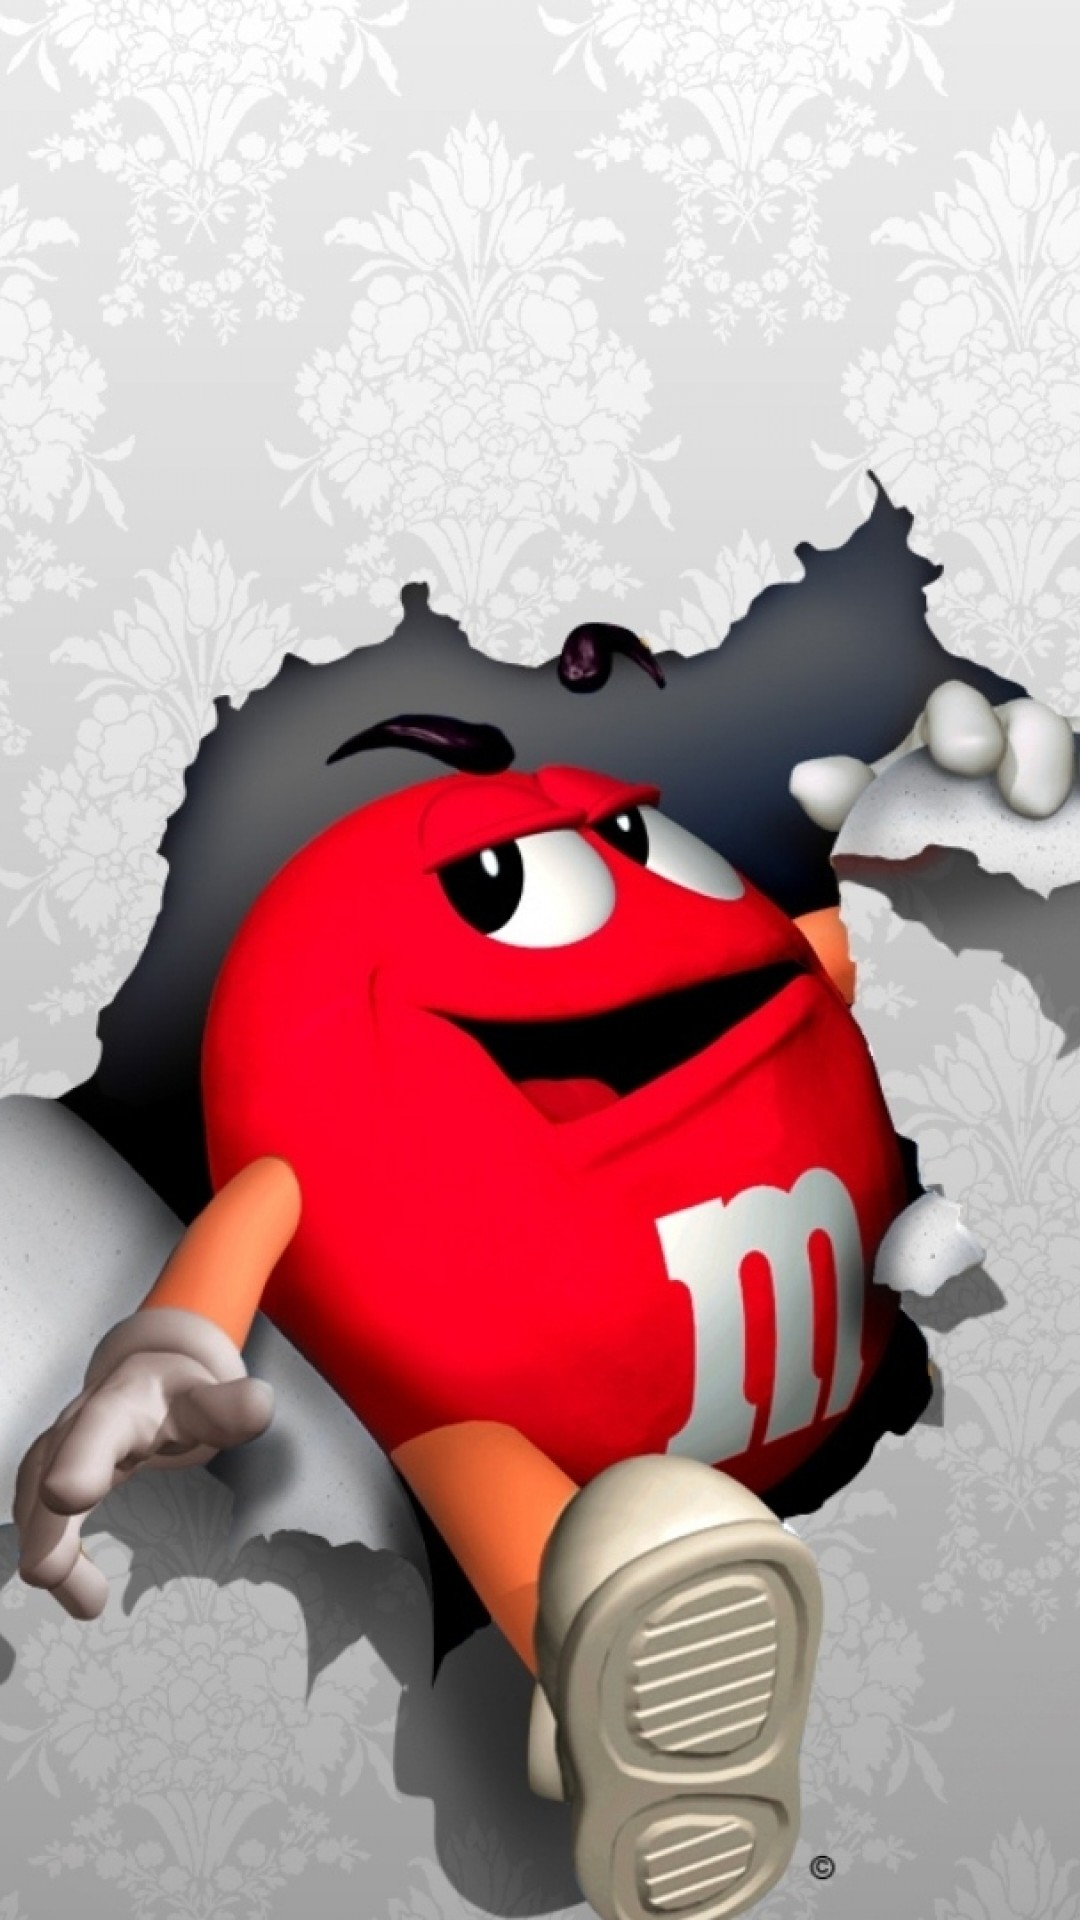 M M Chocolate Wallpaper For Desktop And Mobiles Iphone 6 6s Plus